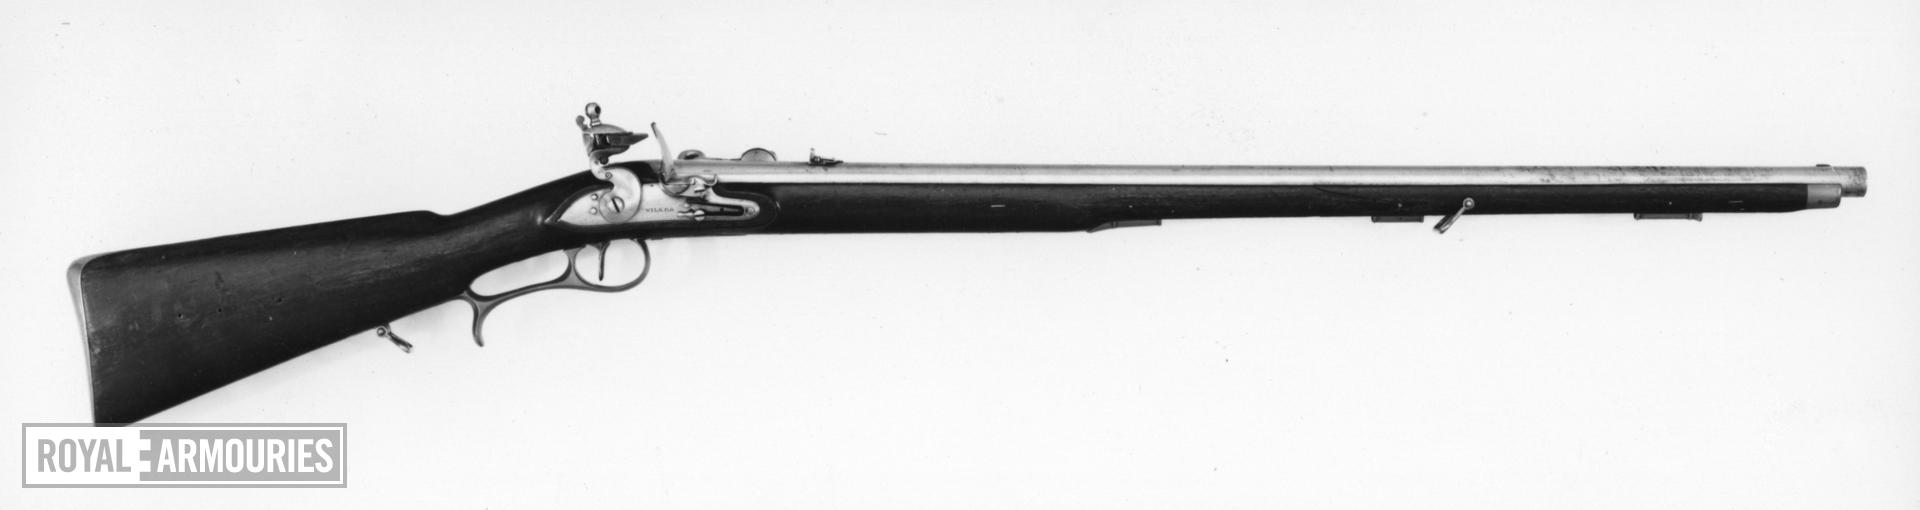 Flintlock breech-loading rifle - By James Wilkes